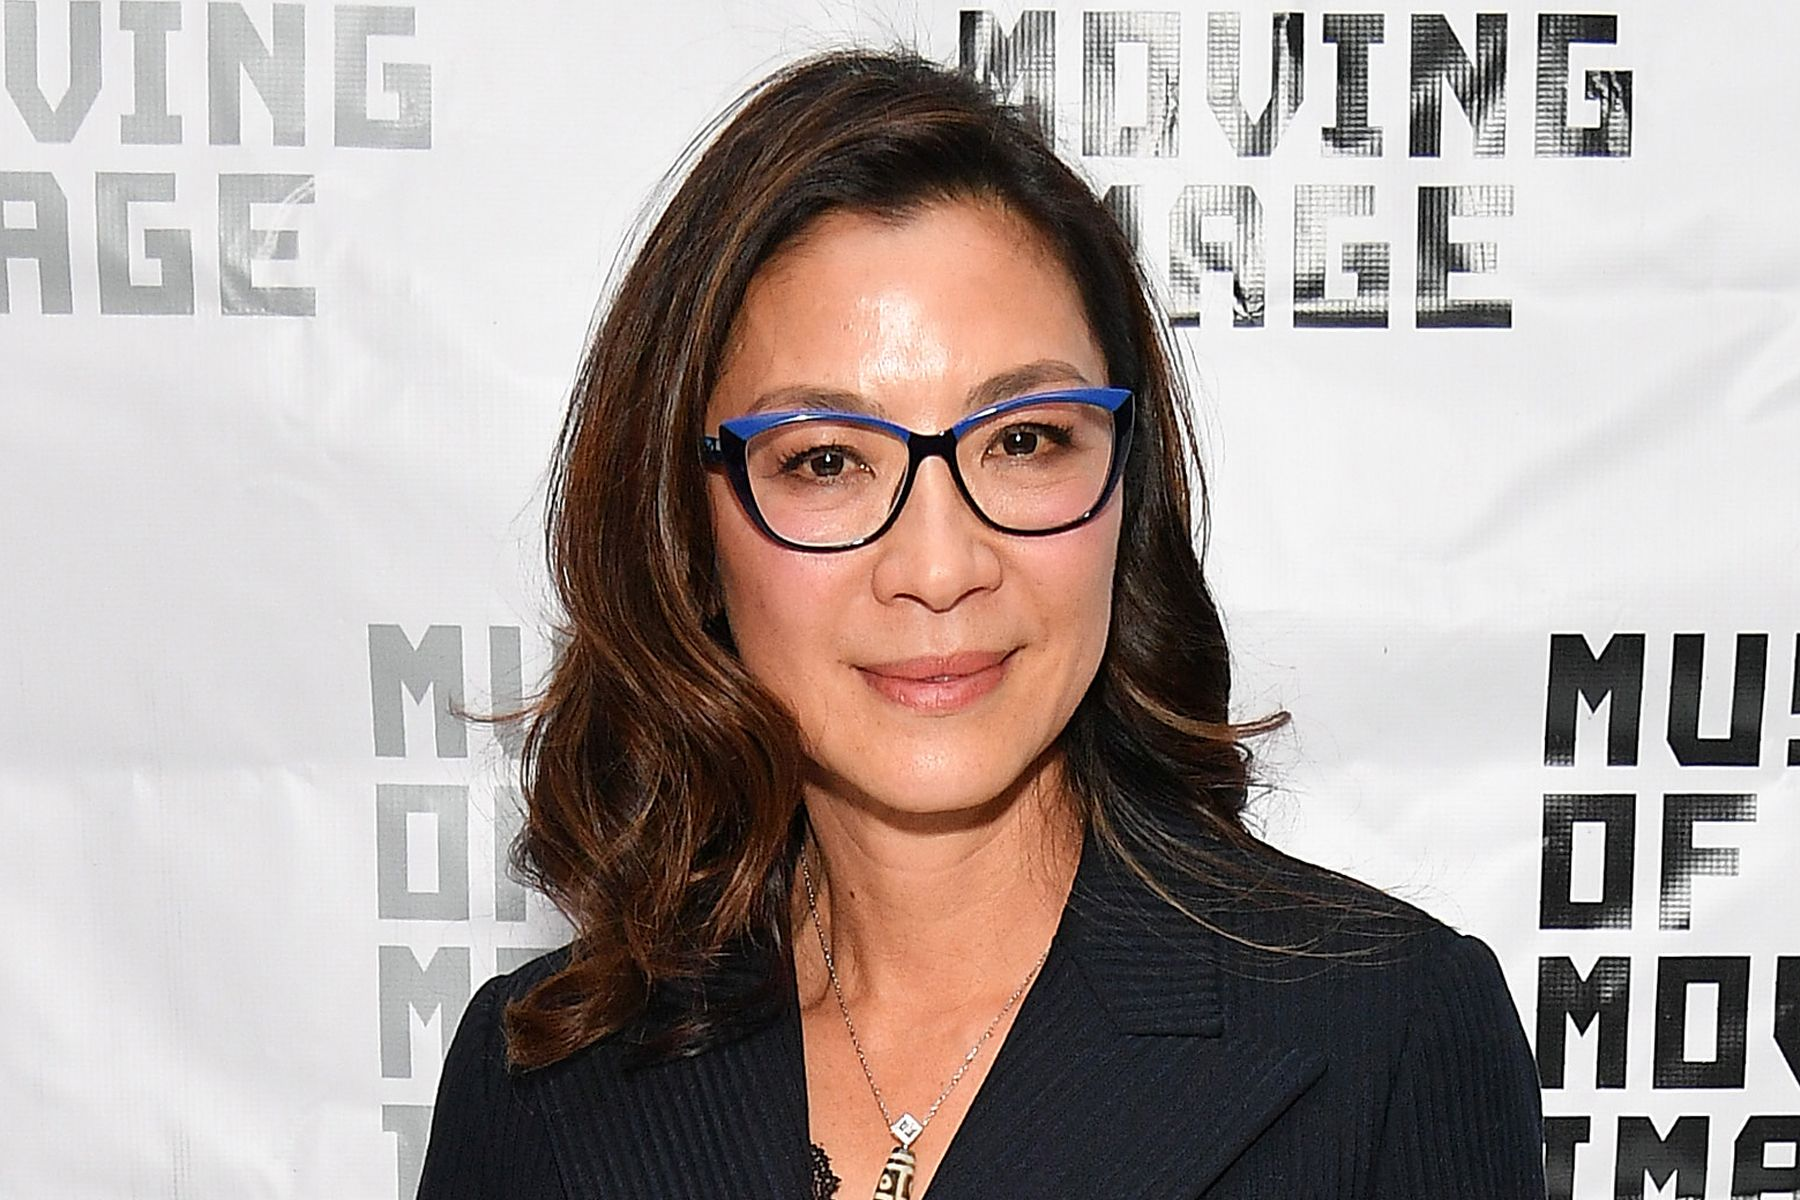 Hairstyles For Women Over 50 With Glasses Hairstyles With Glasses Long Face Hairstyles Glasses For Long Faces